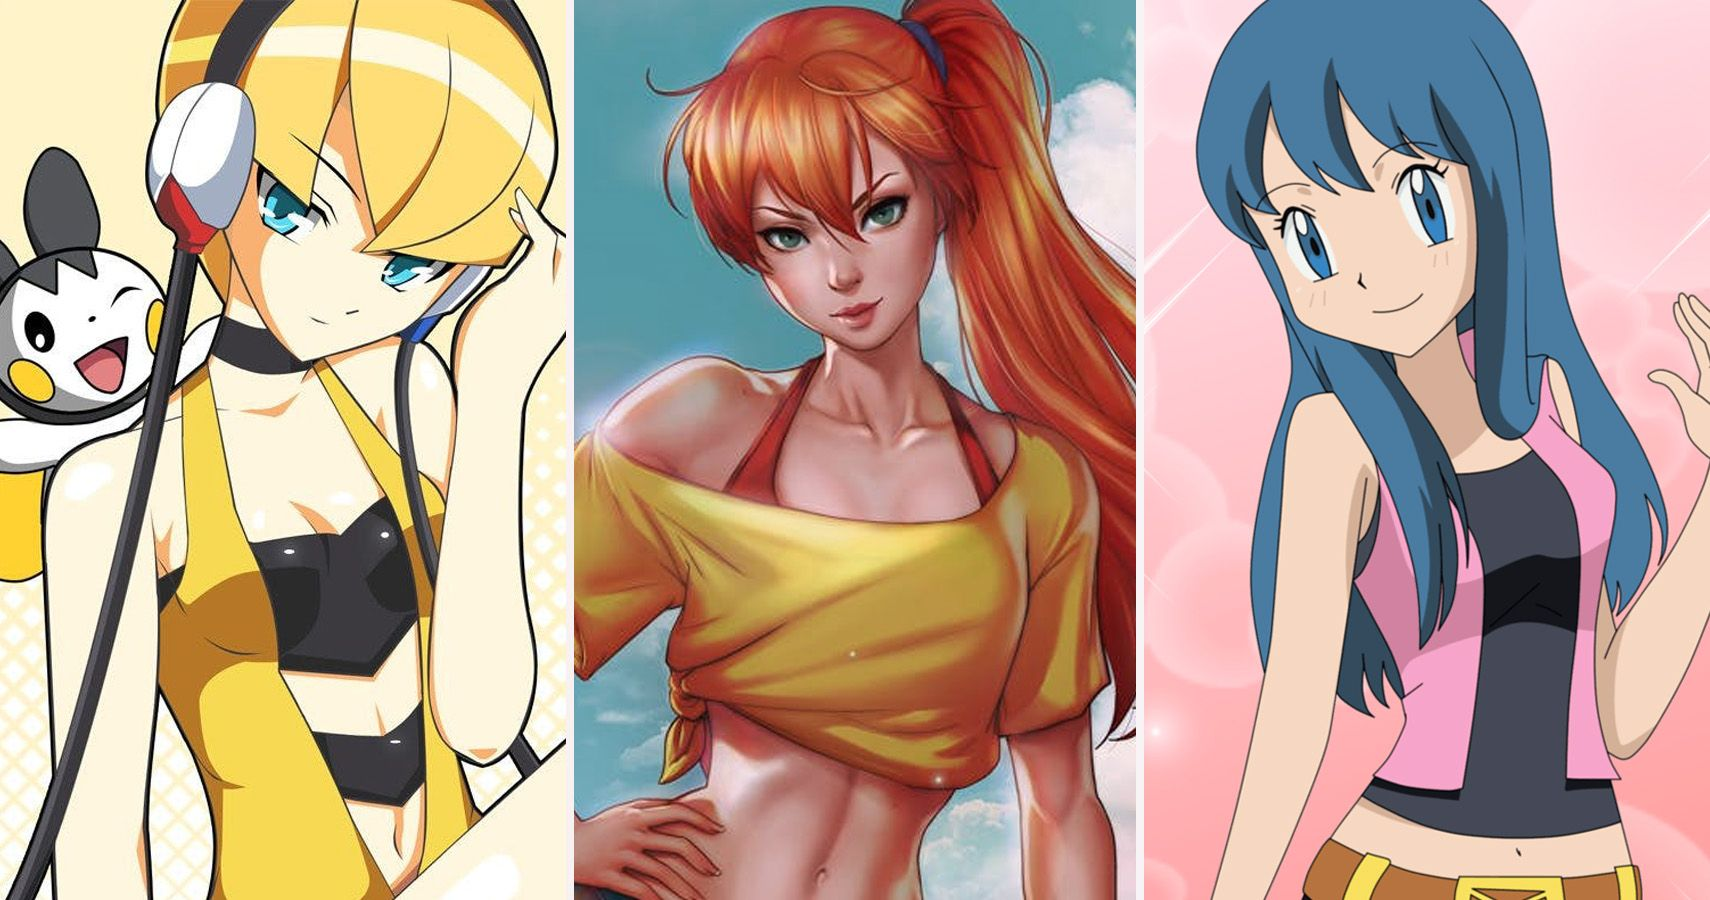 Pokémon characters 10 years later that make us drool